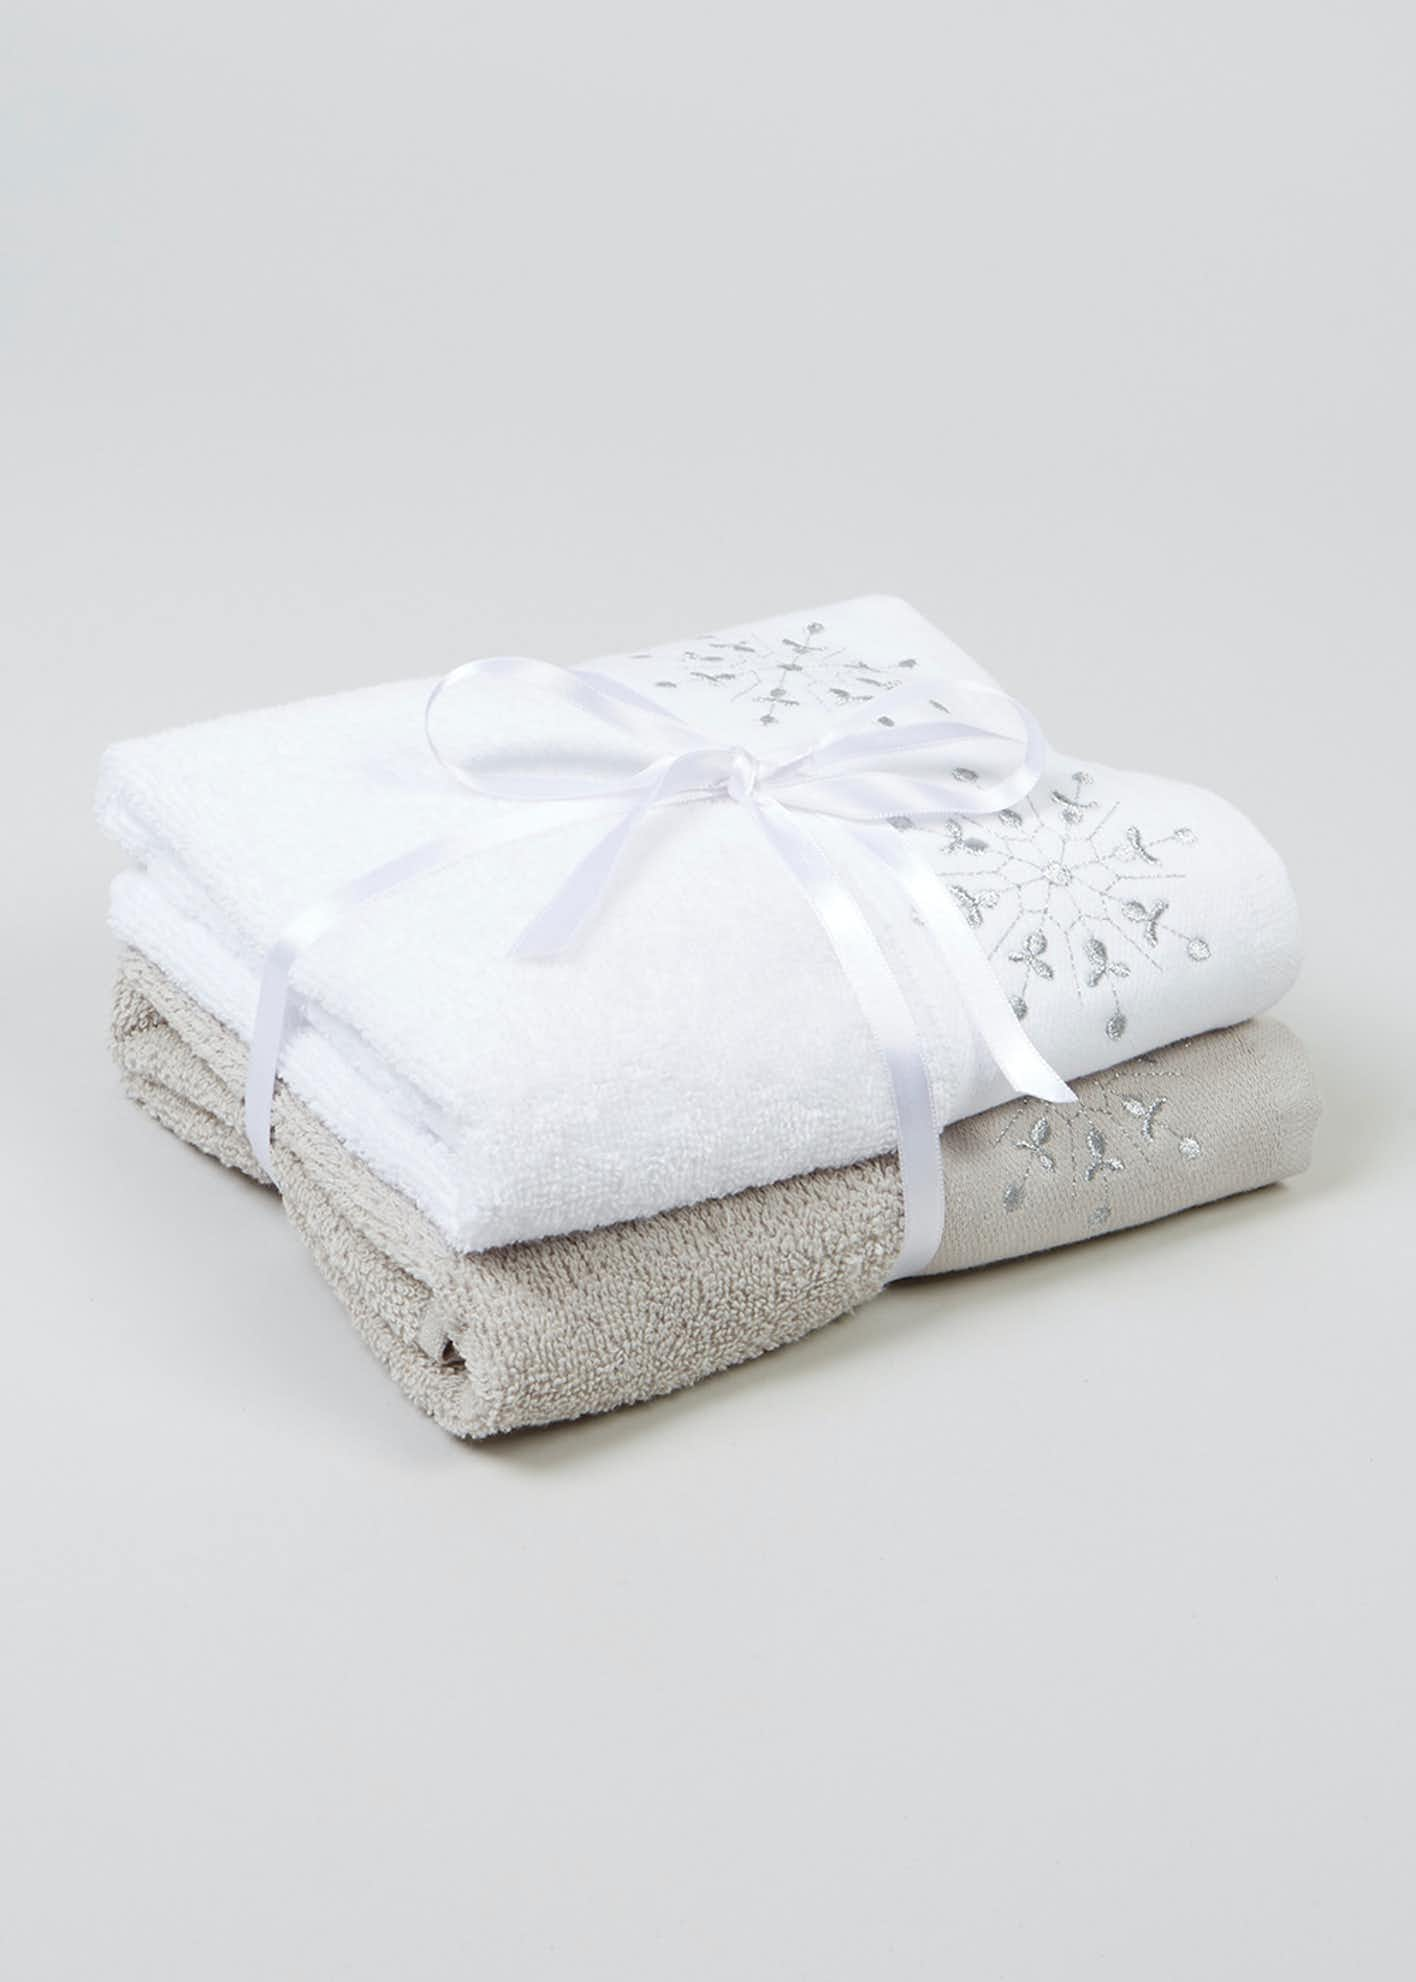 2 Pack Snowflake Embroidered Christmas Guest Towels (60cm x 47cm)